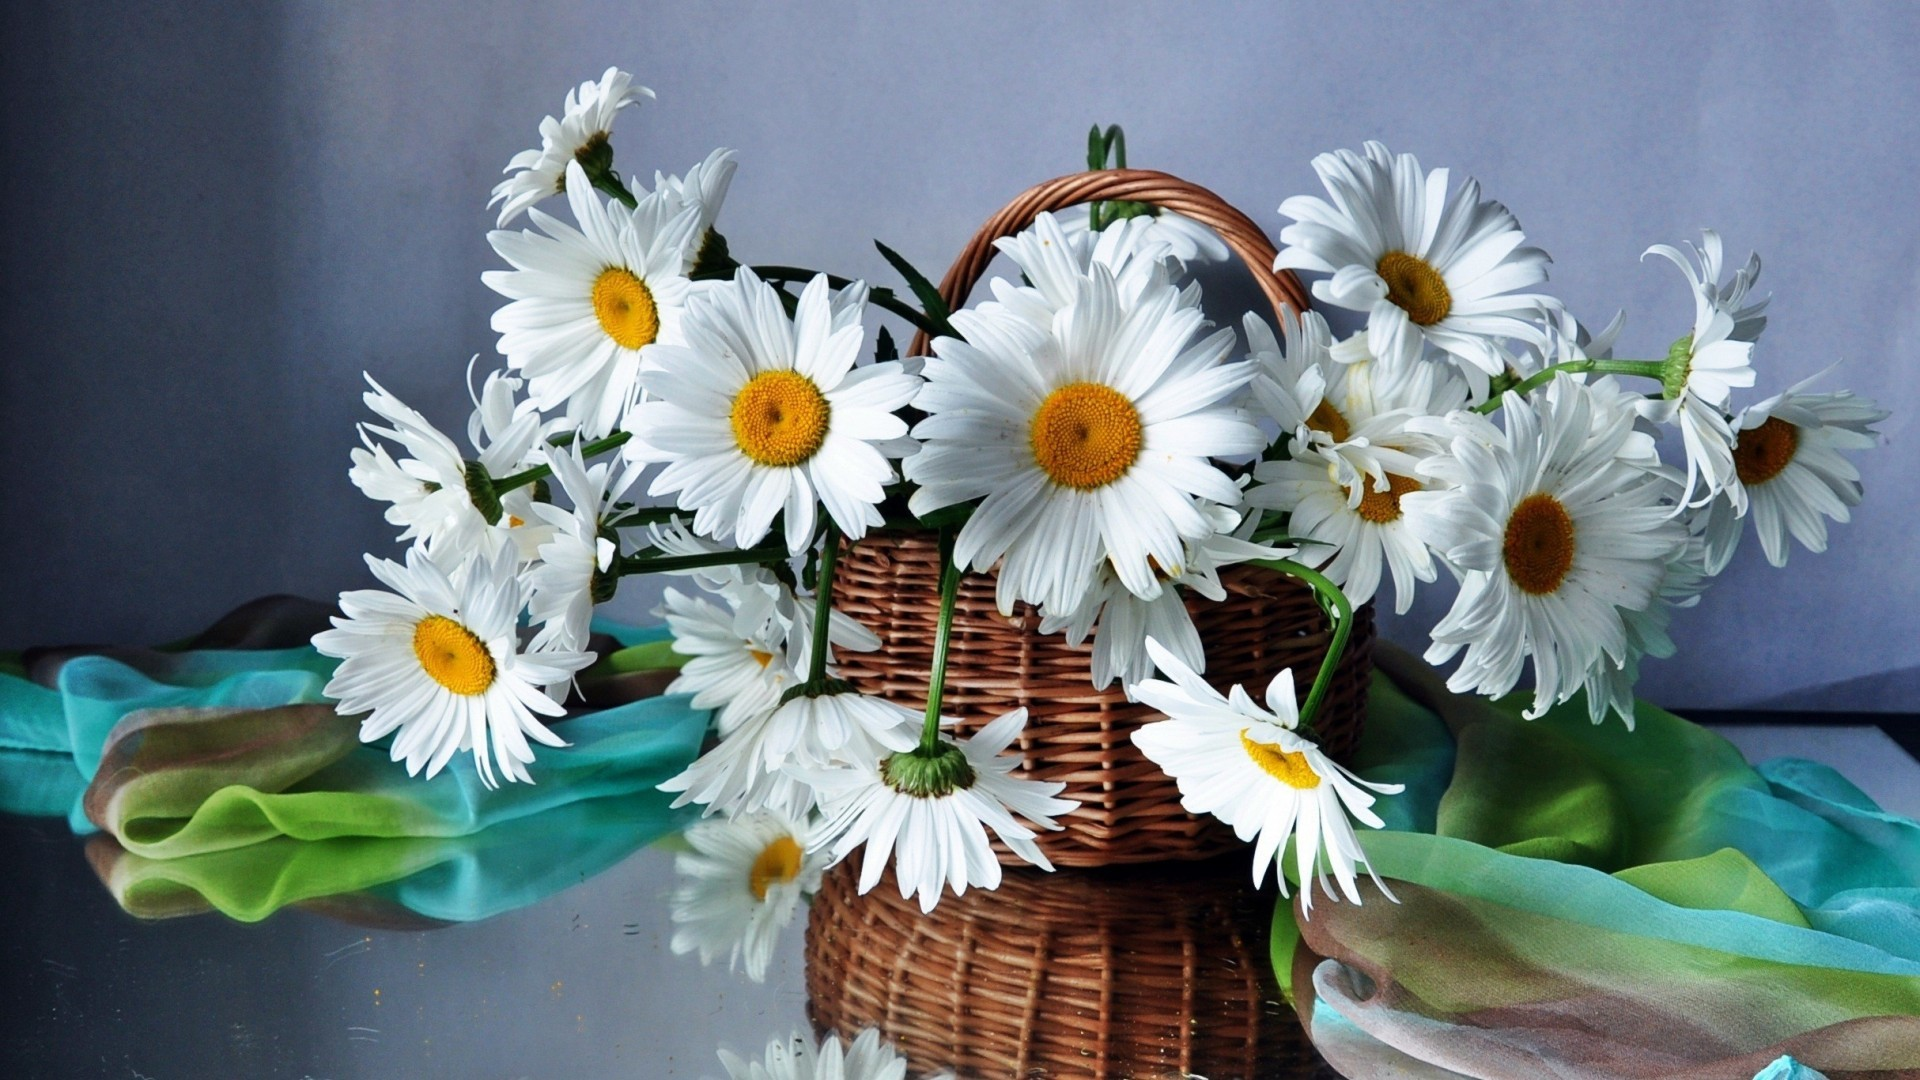 41549 download wallpaper Plants, Flowers, Camomile screensavers and pictures for free